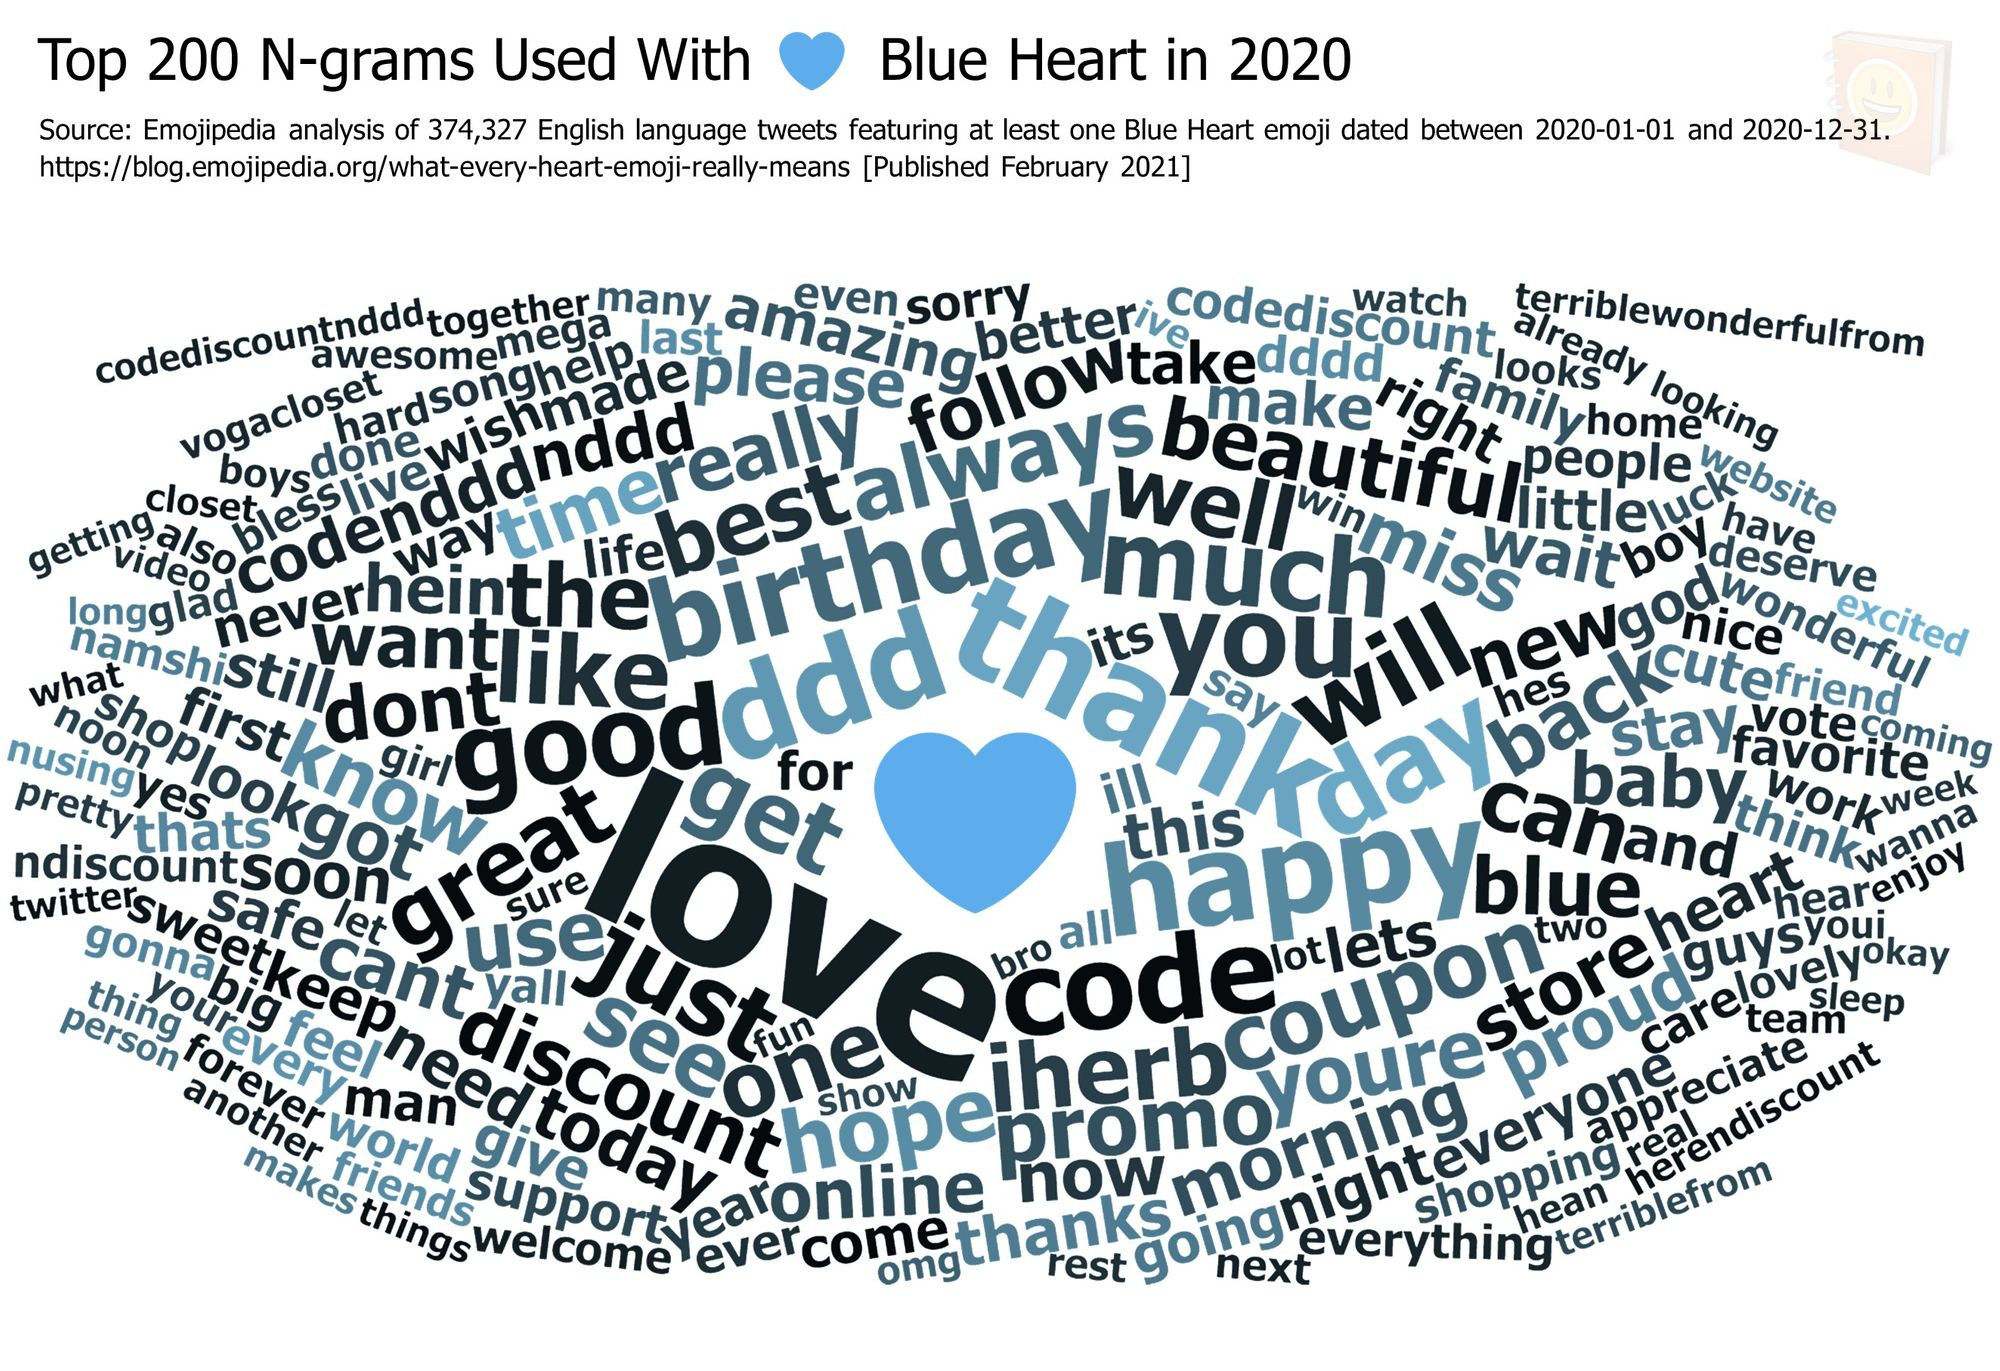 Emojipedia-Blog---What-Every-Heart-Emoji-Really-Means---Top-200-N-grams-Used-With-------Blue-Heart-in-2020